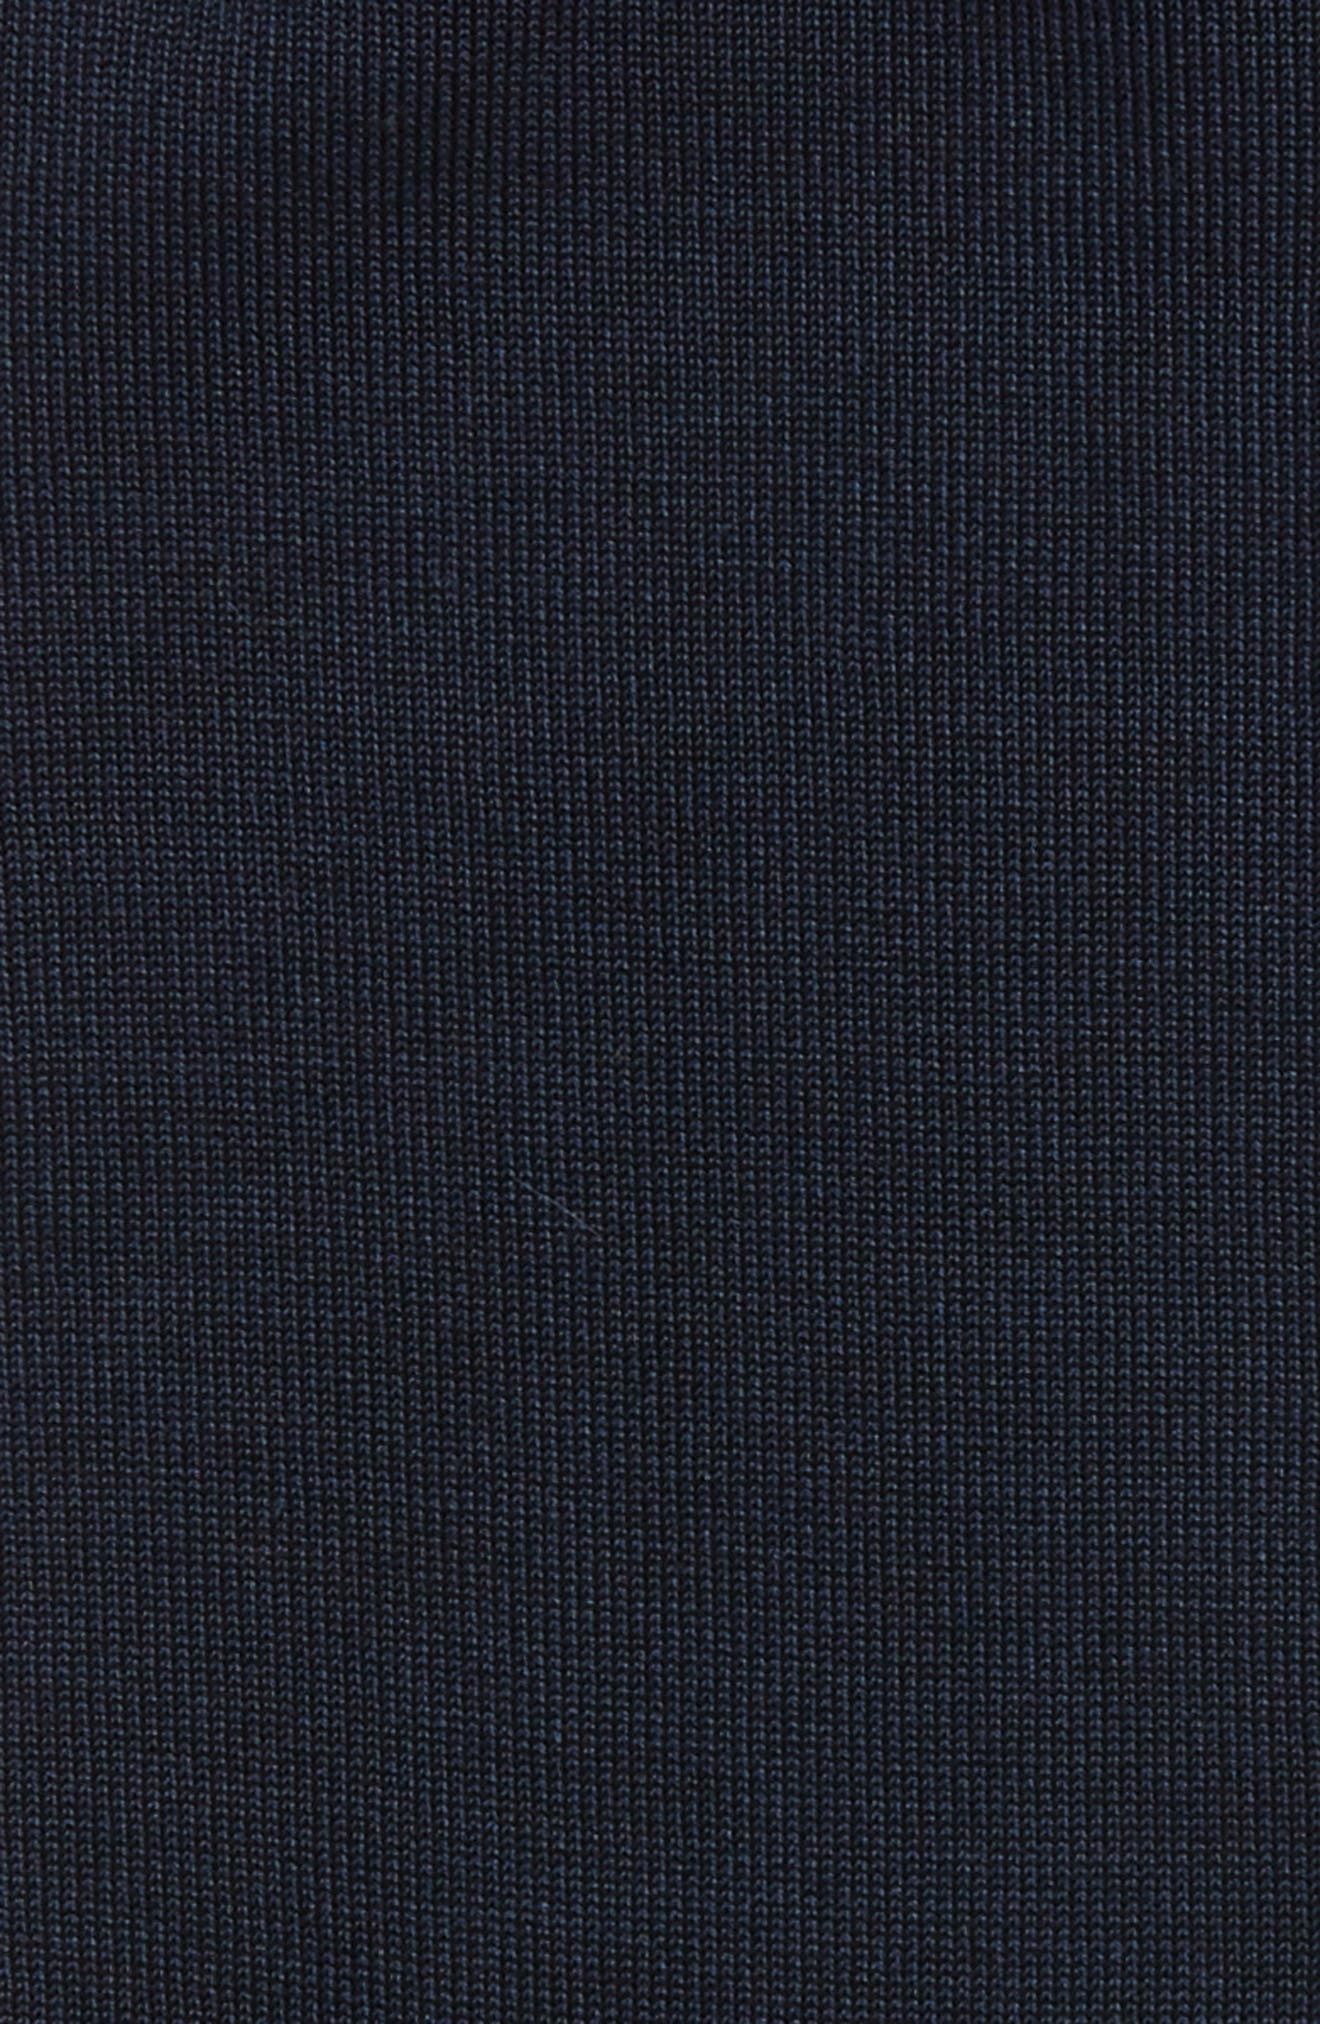 Cotton Blend Socks,                             Alternate thumbnail 2, color,                             NAVY PEACOAT